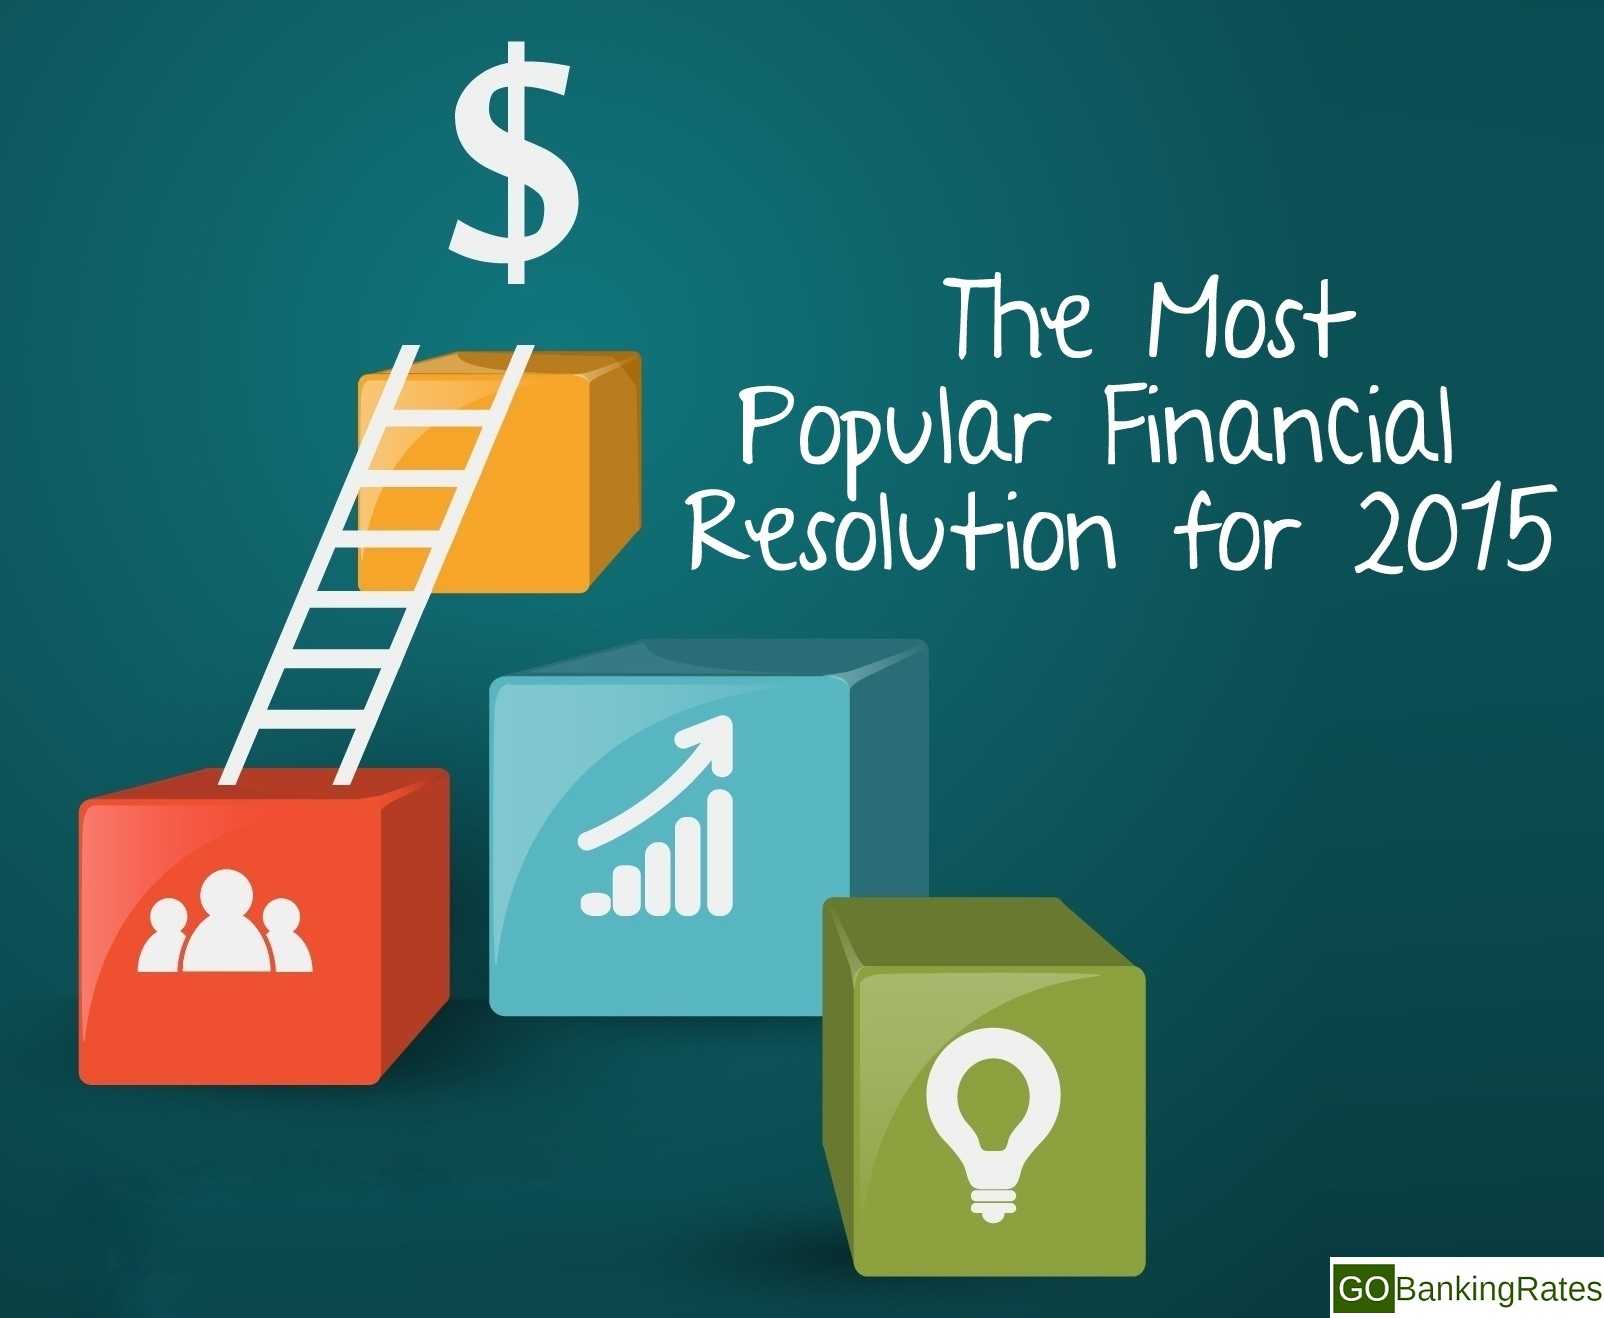 This Is the Most Popular Financial Resolution for 2015